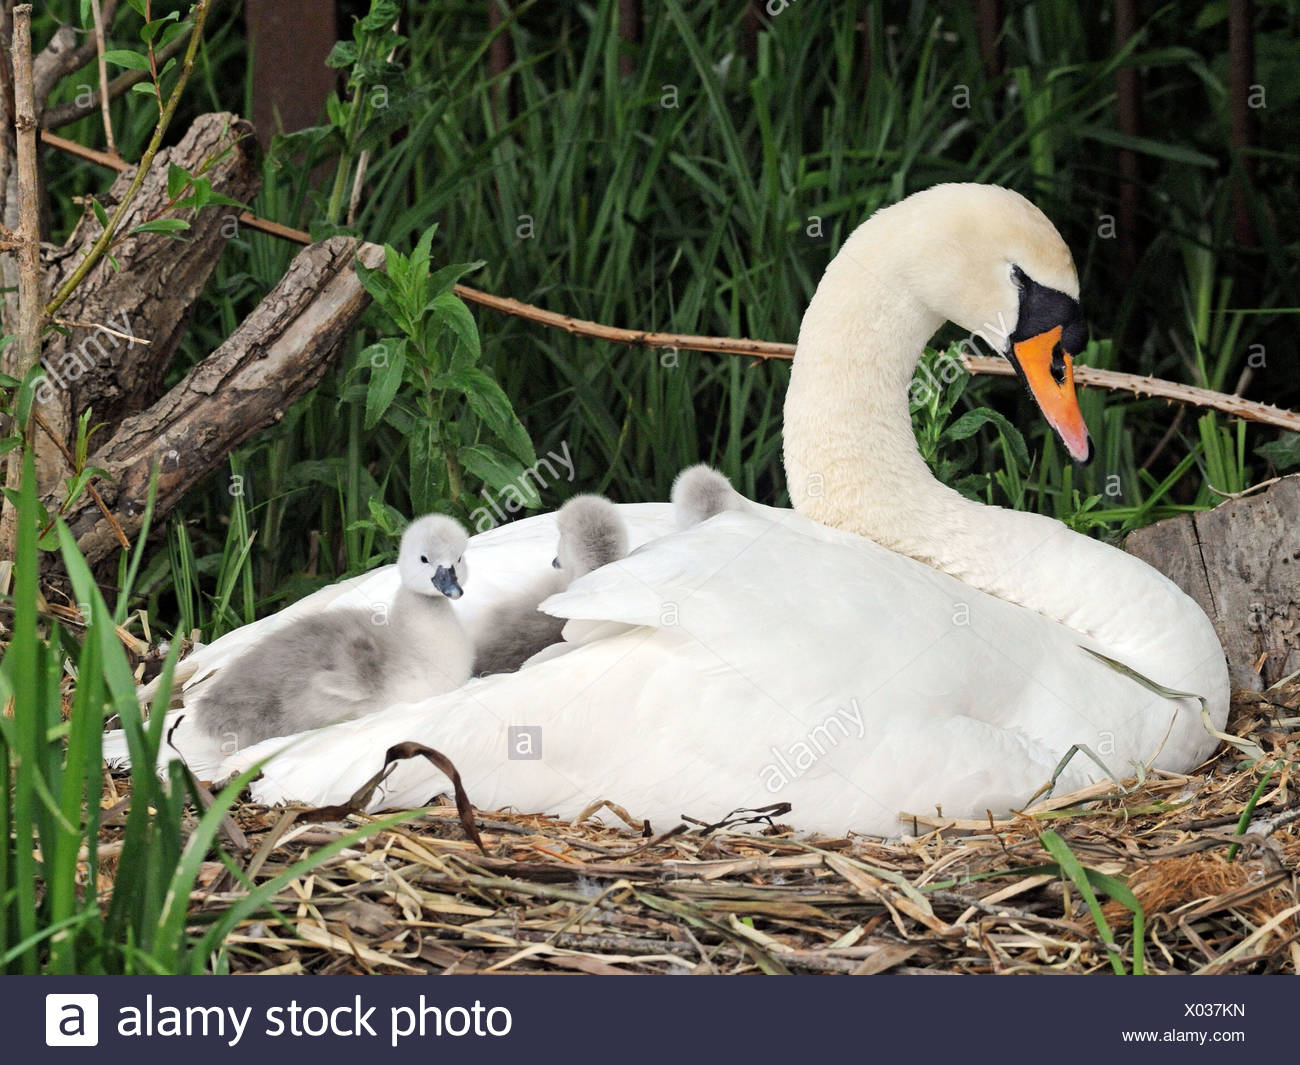 A swan with young cygnets sitting in her wings. Stock Photo